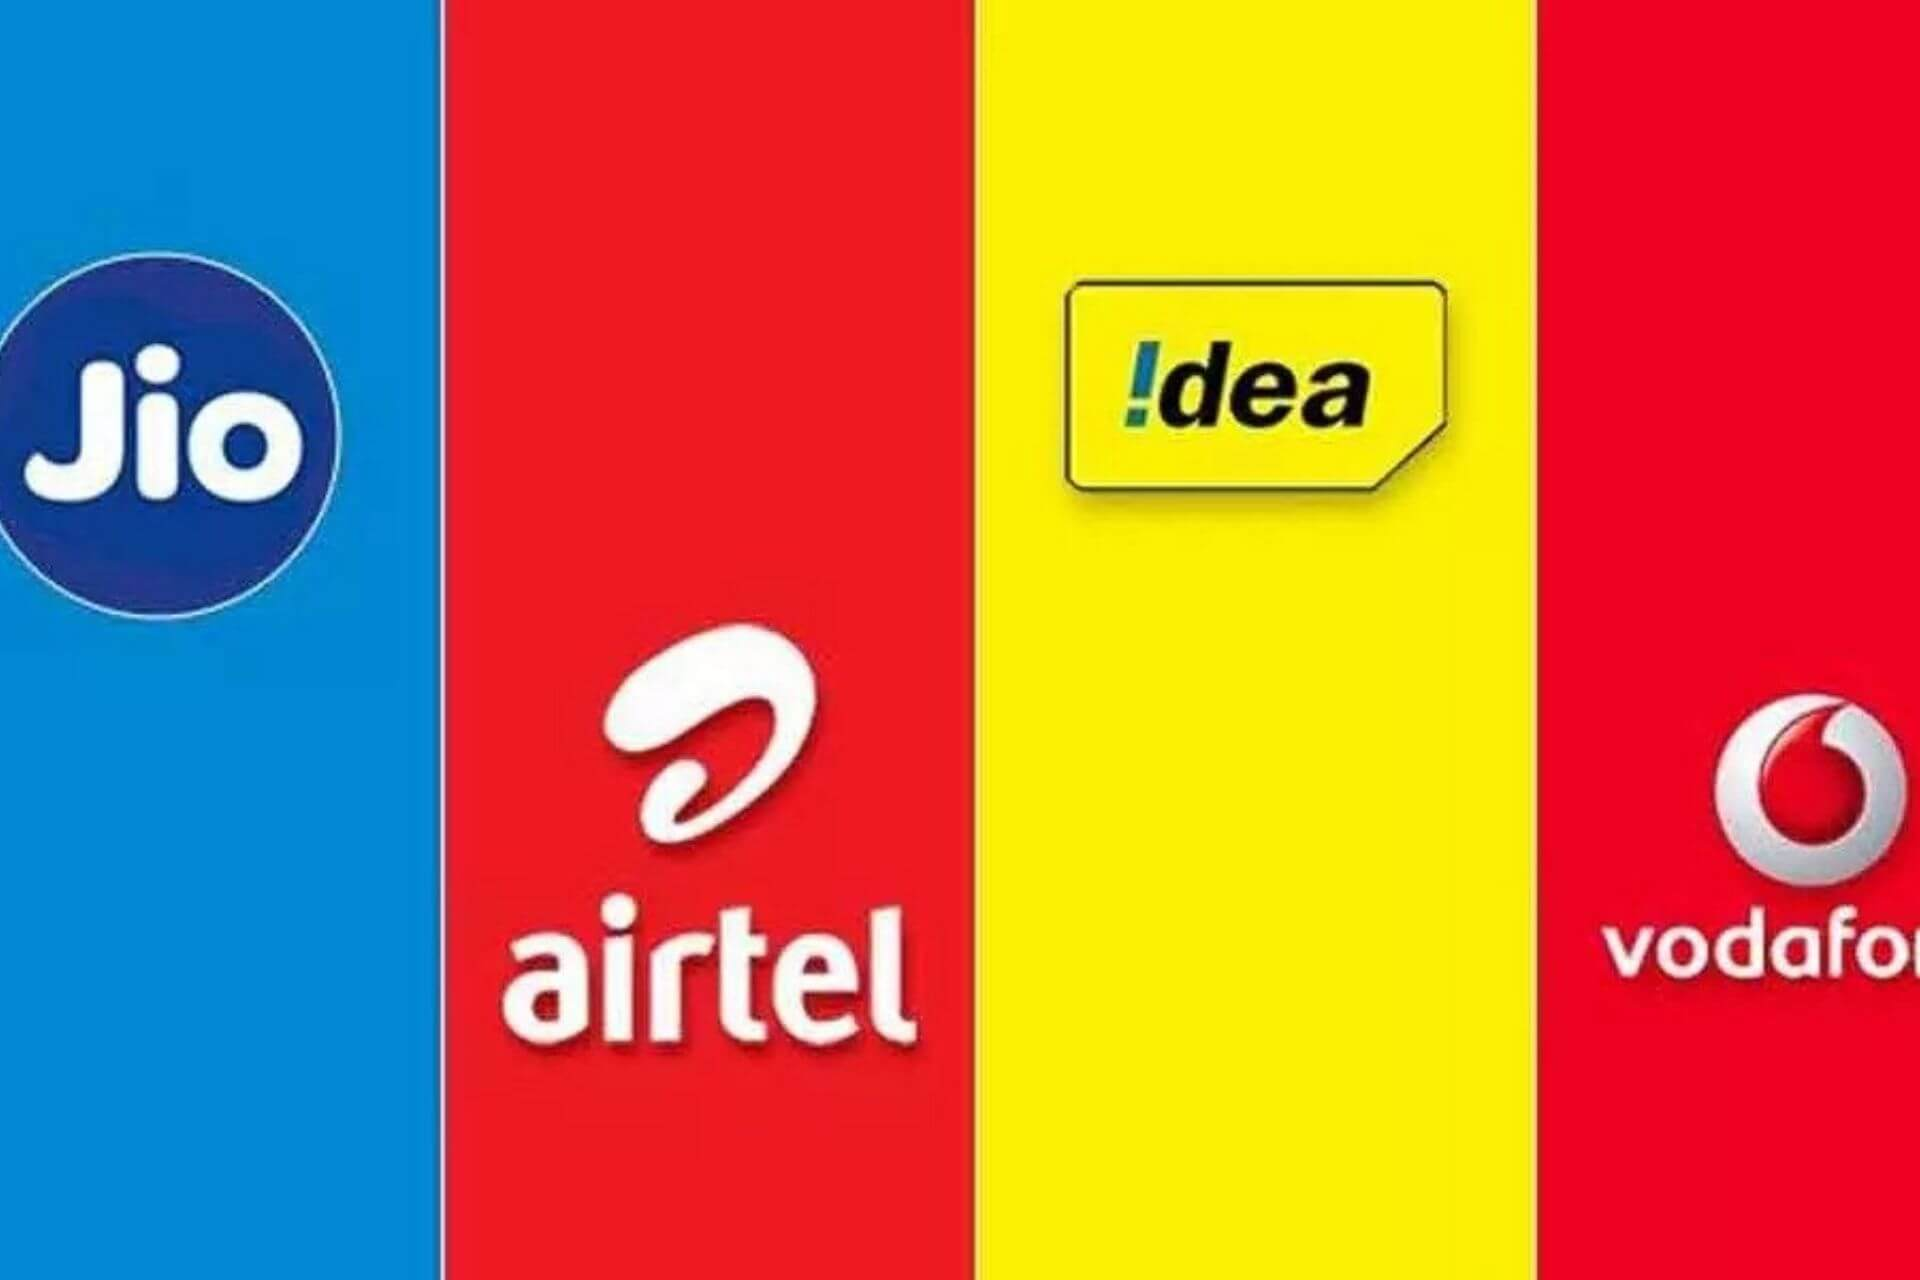 The Telecom War in India - Jio, Airtel, Vodafone cover